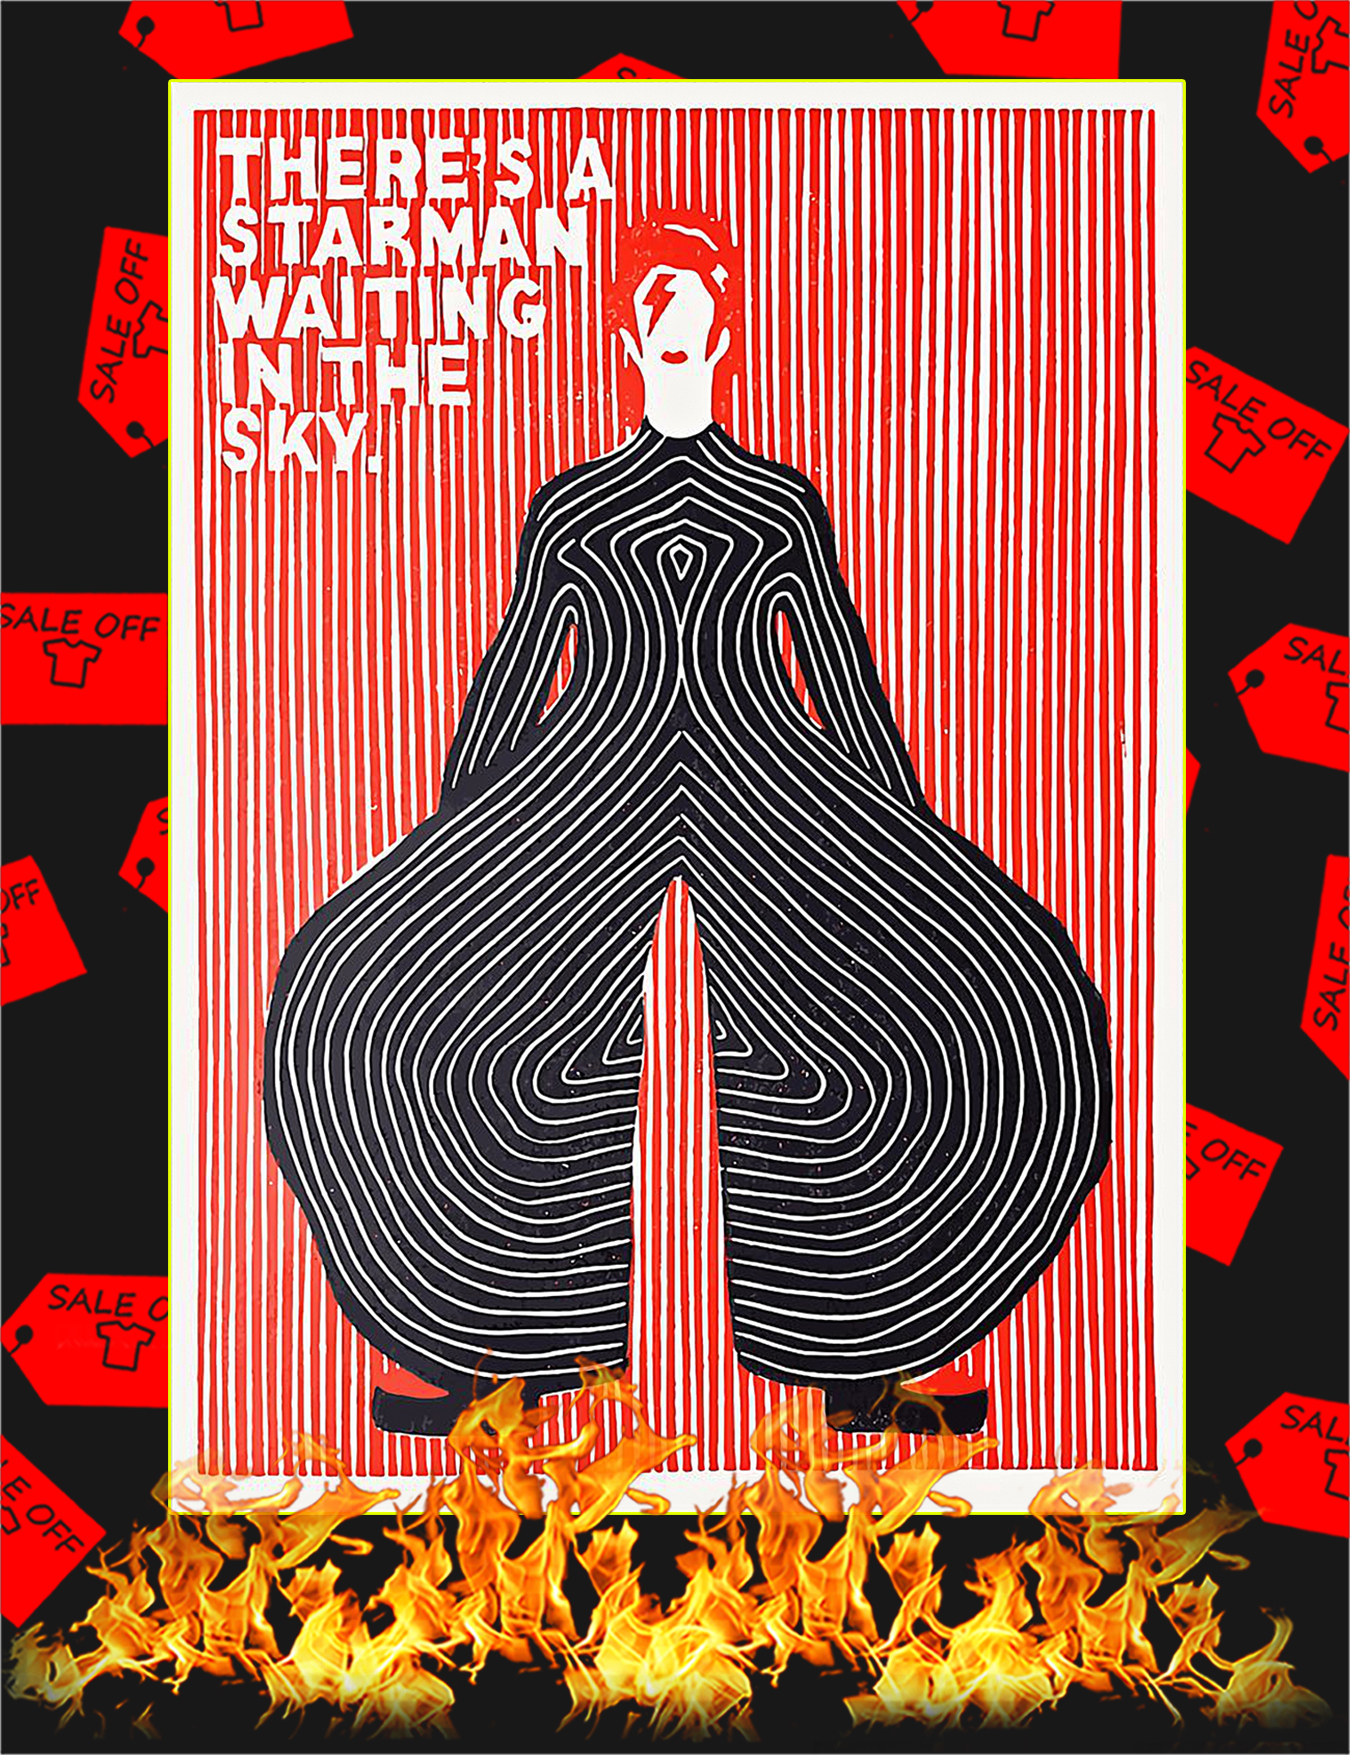 There's a starman waiting in the sky poster - A2